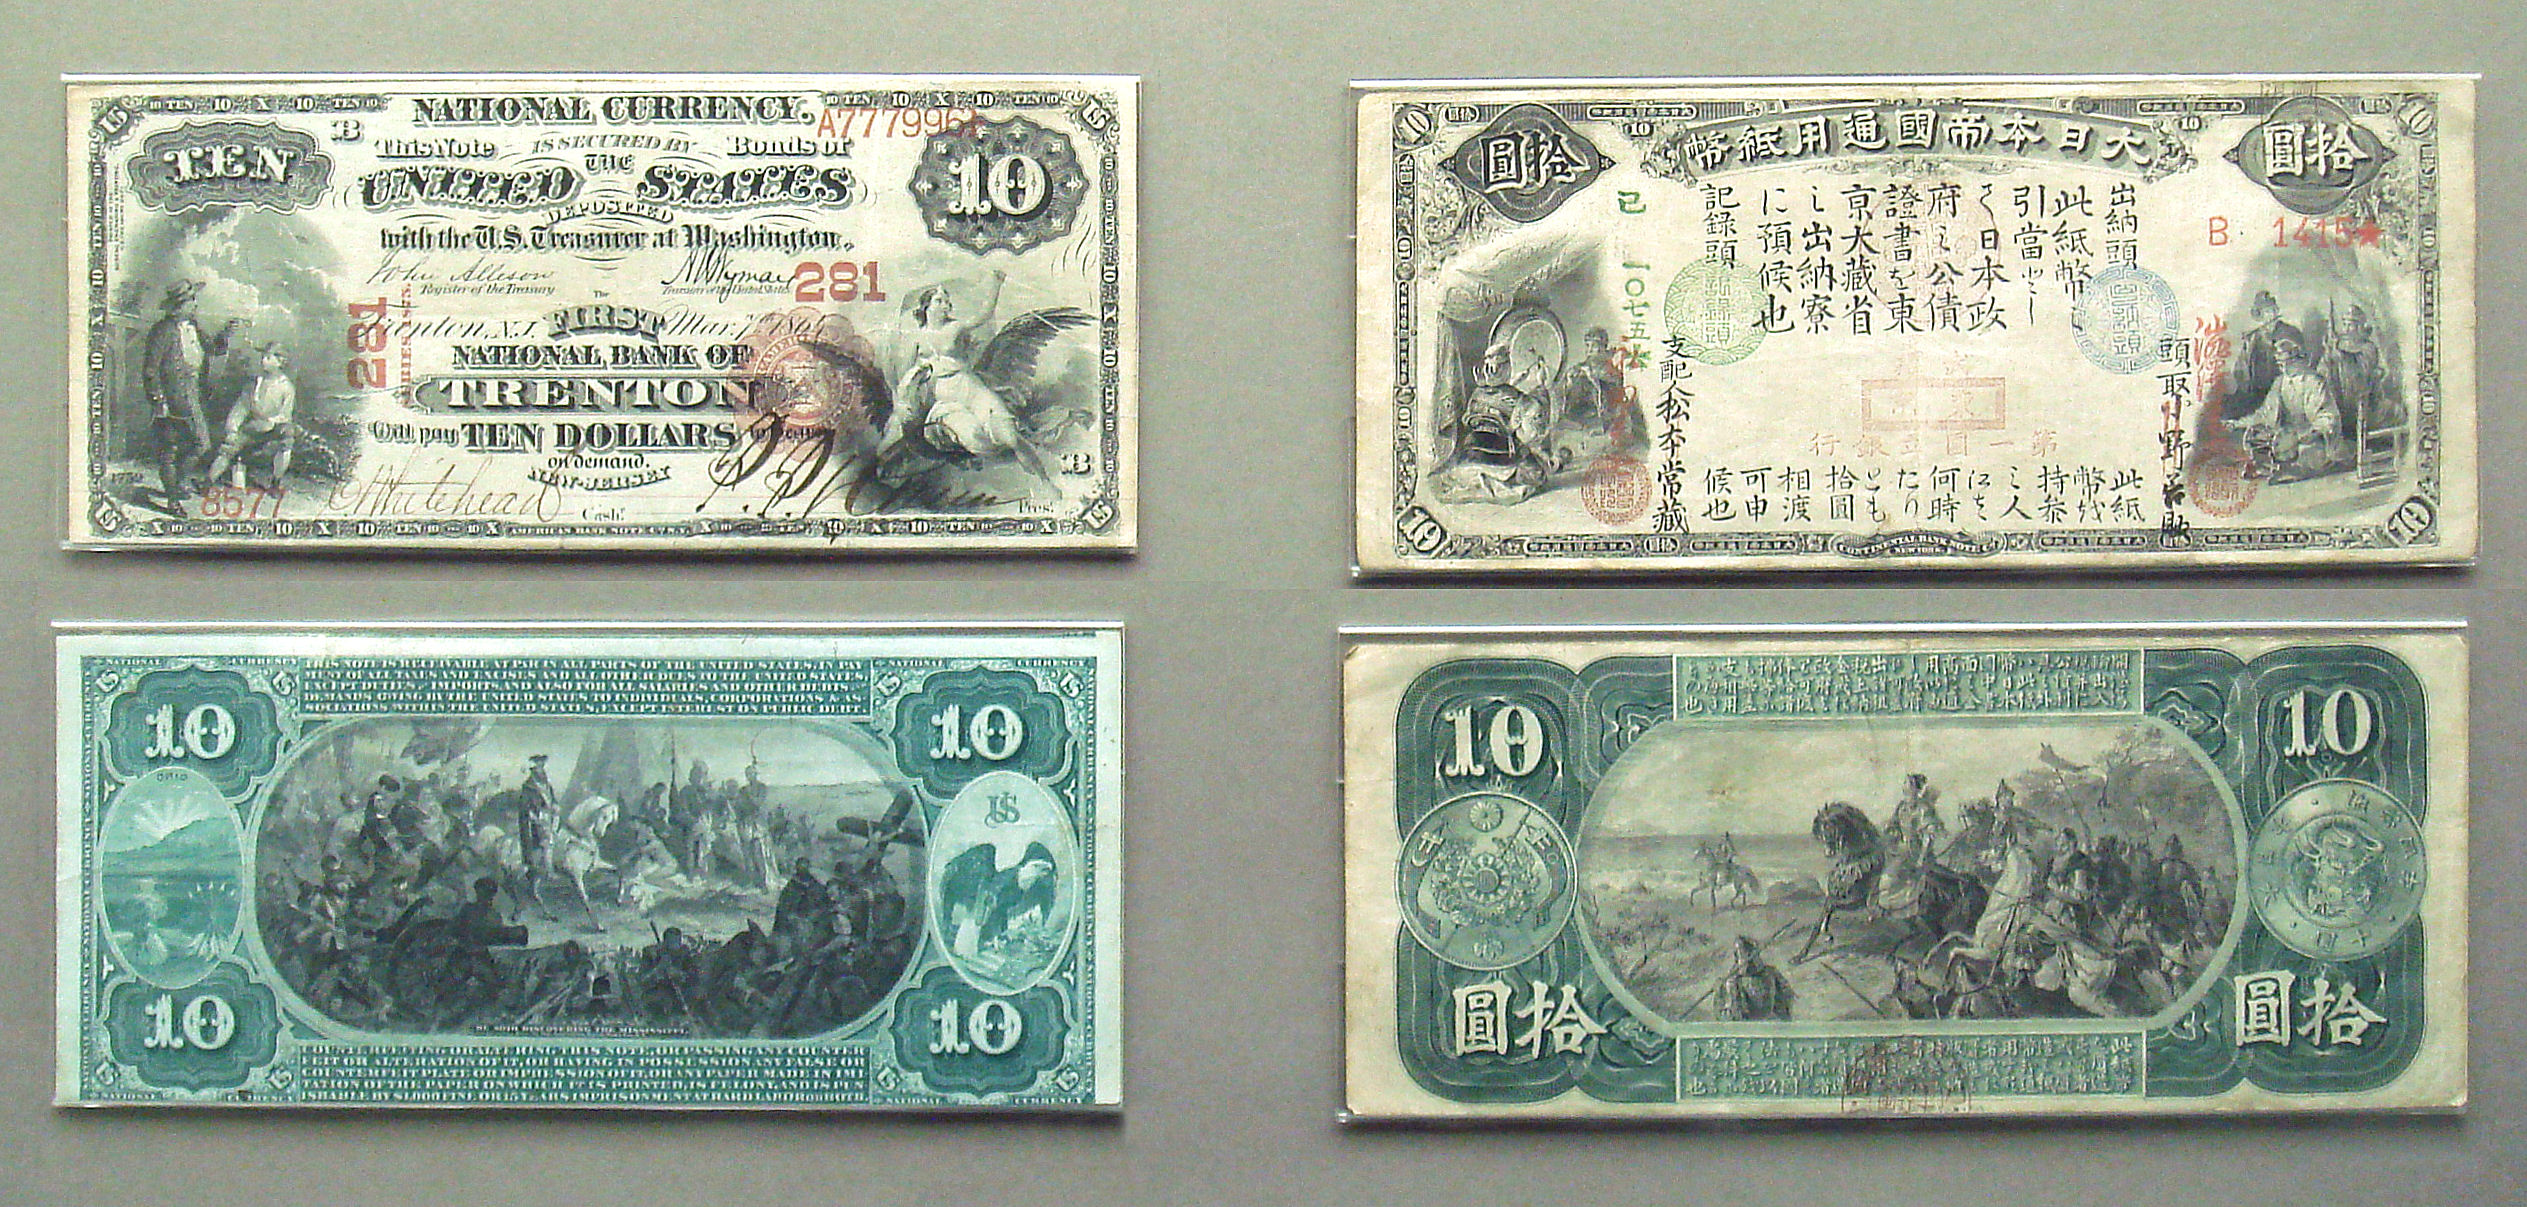 U.S. and Japanese currency, 1873